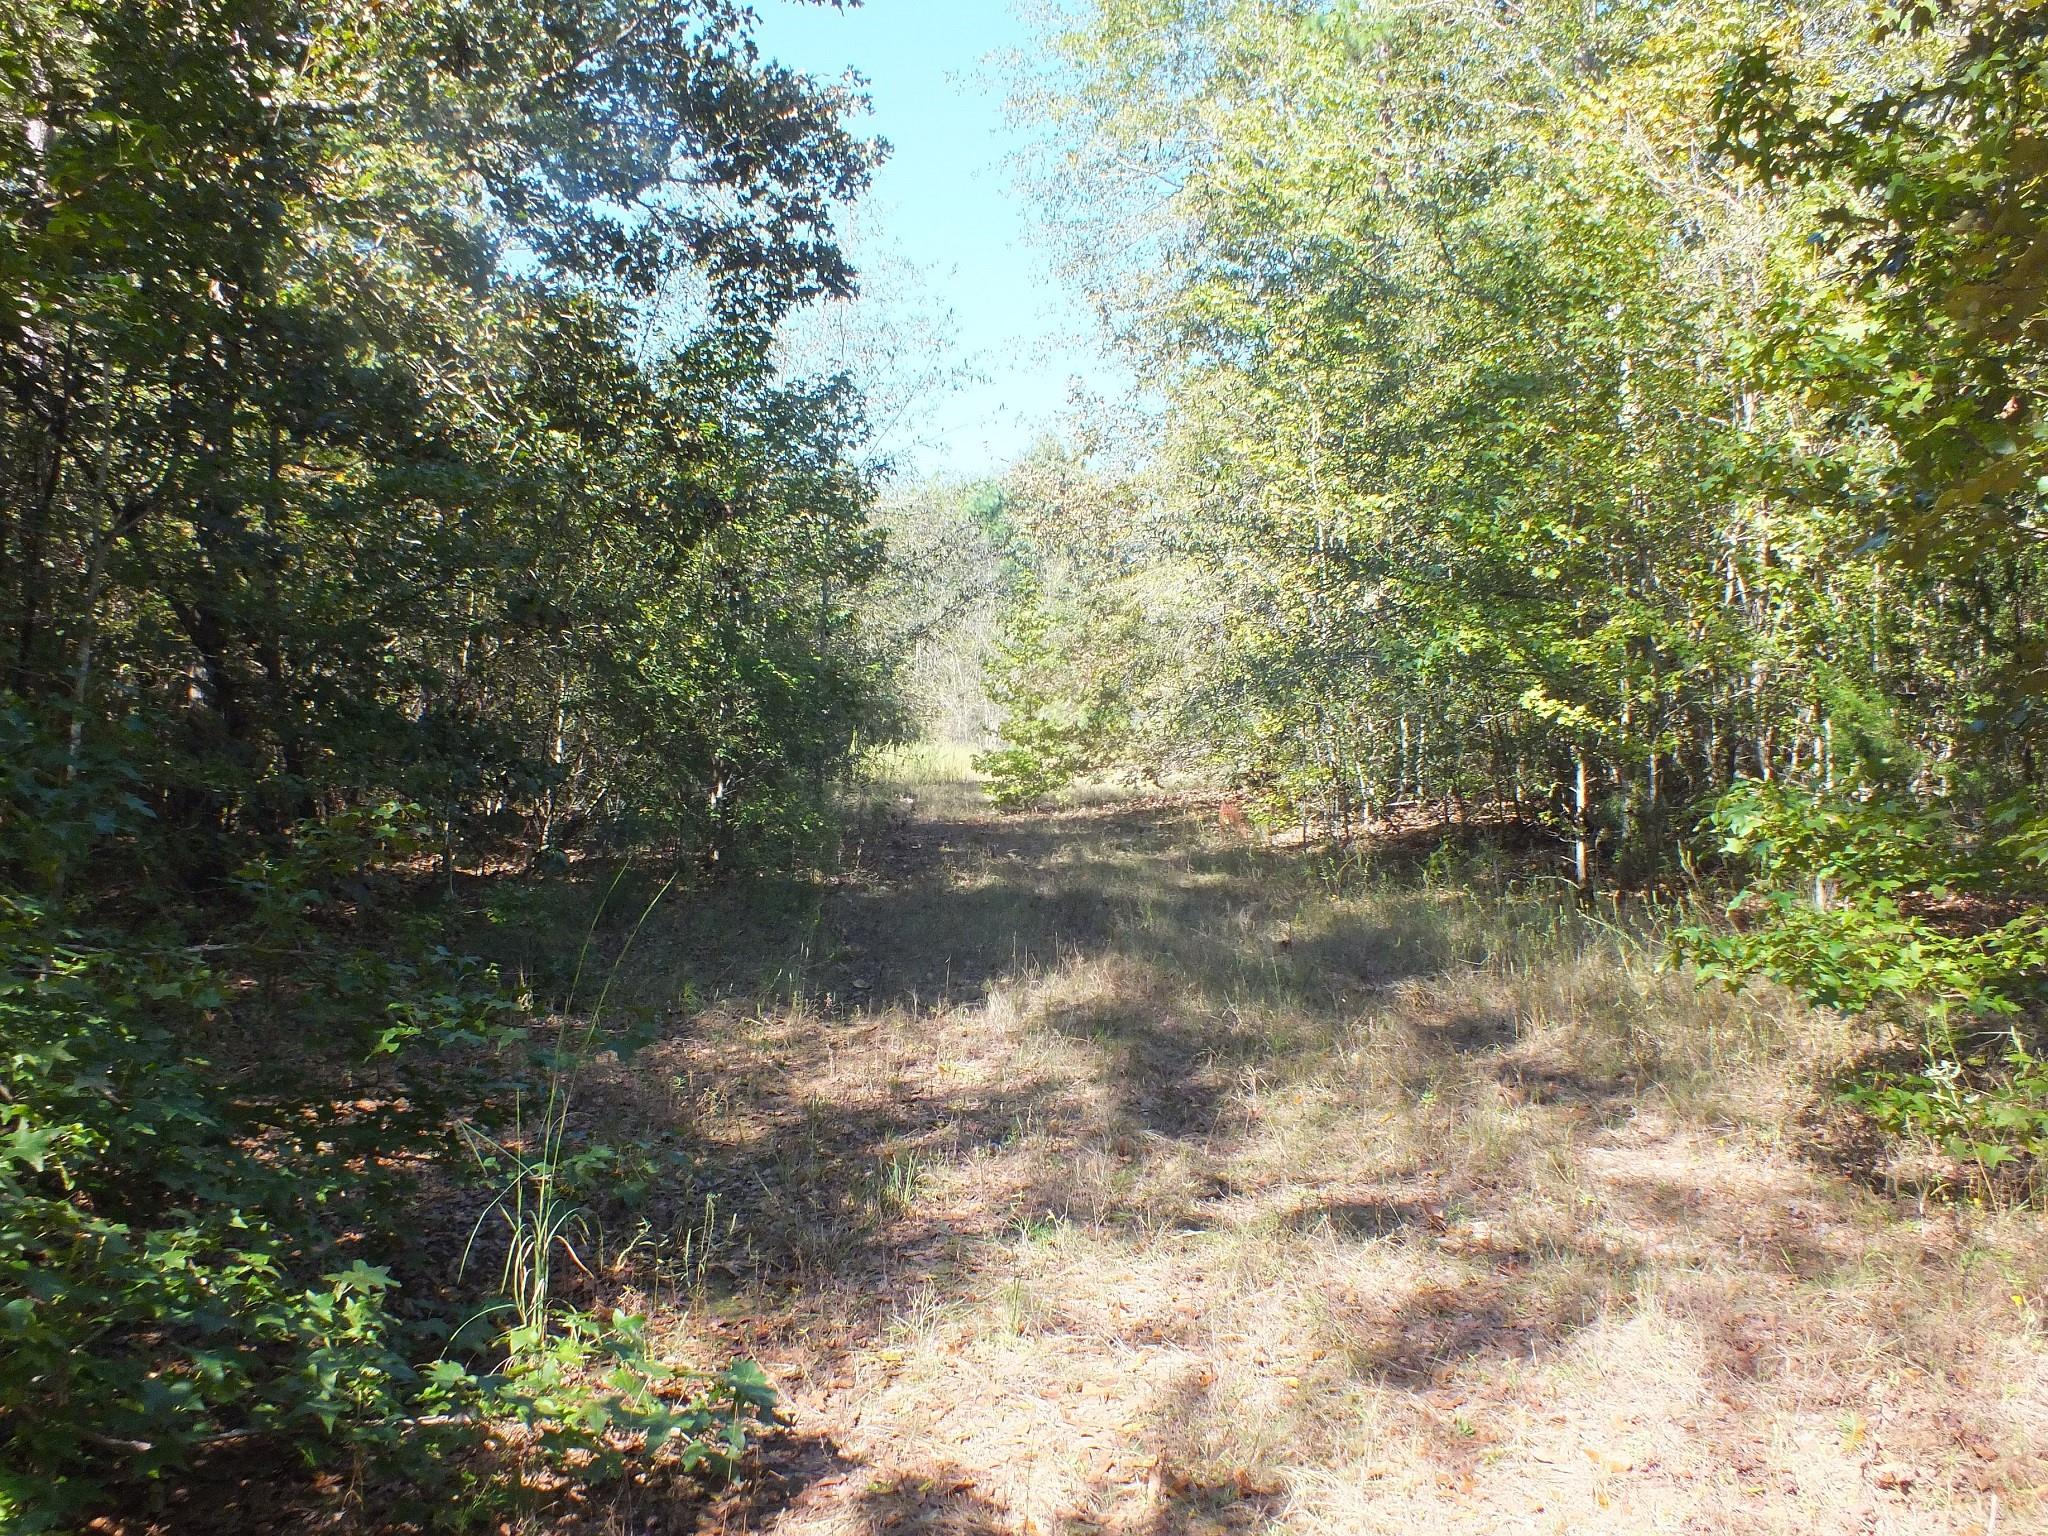 000 County Road 4227 Property Photo - New Summerfield, TX real estate listing